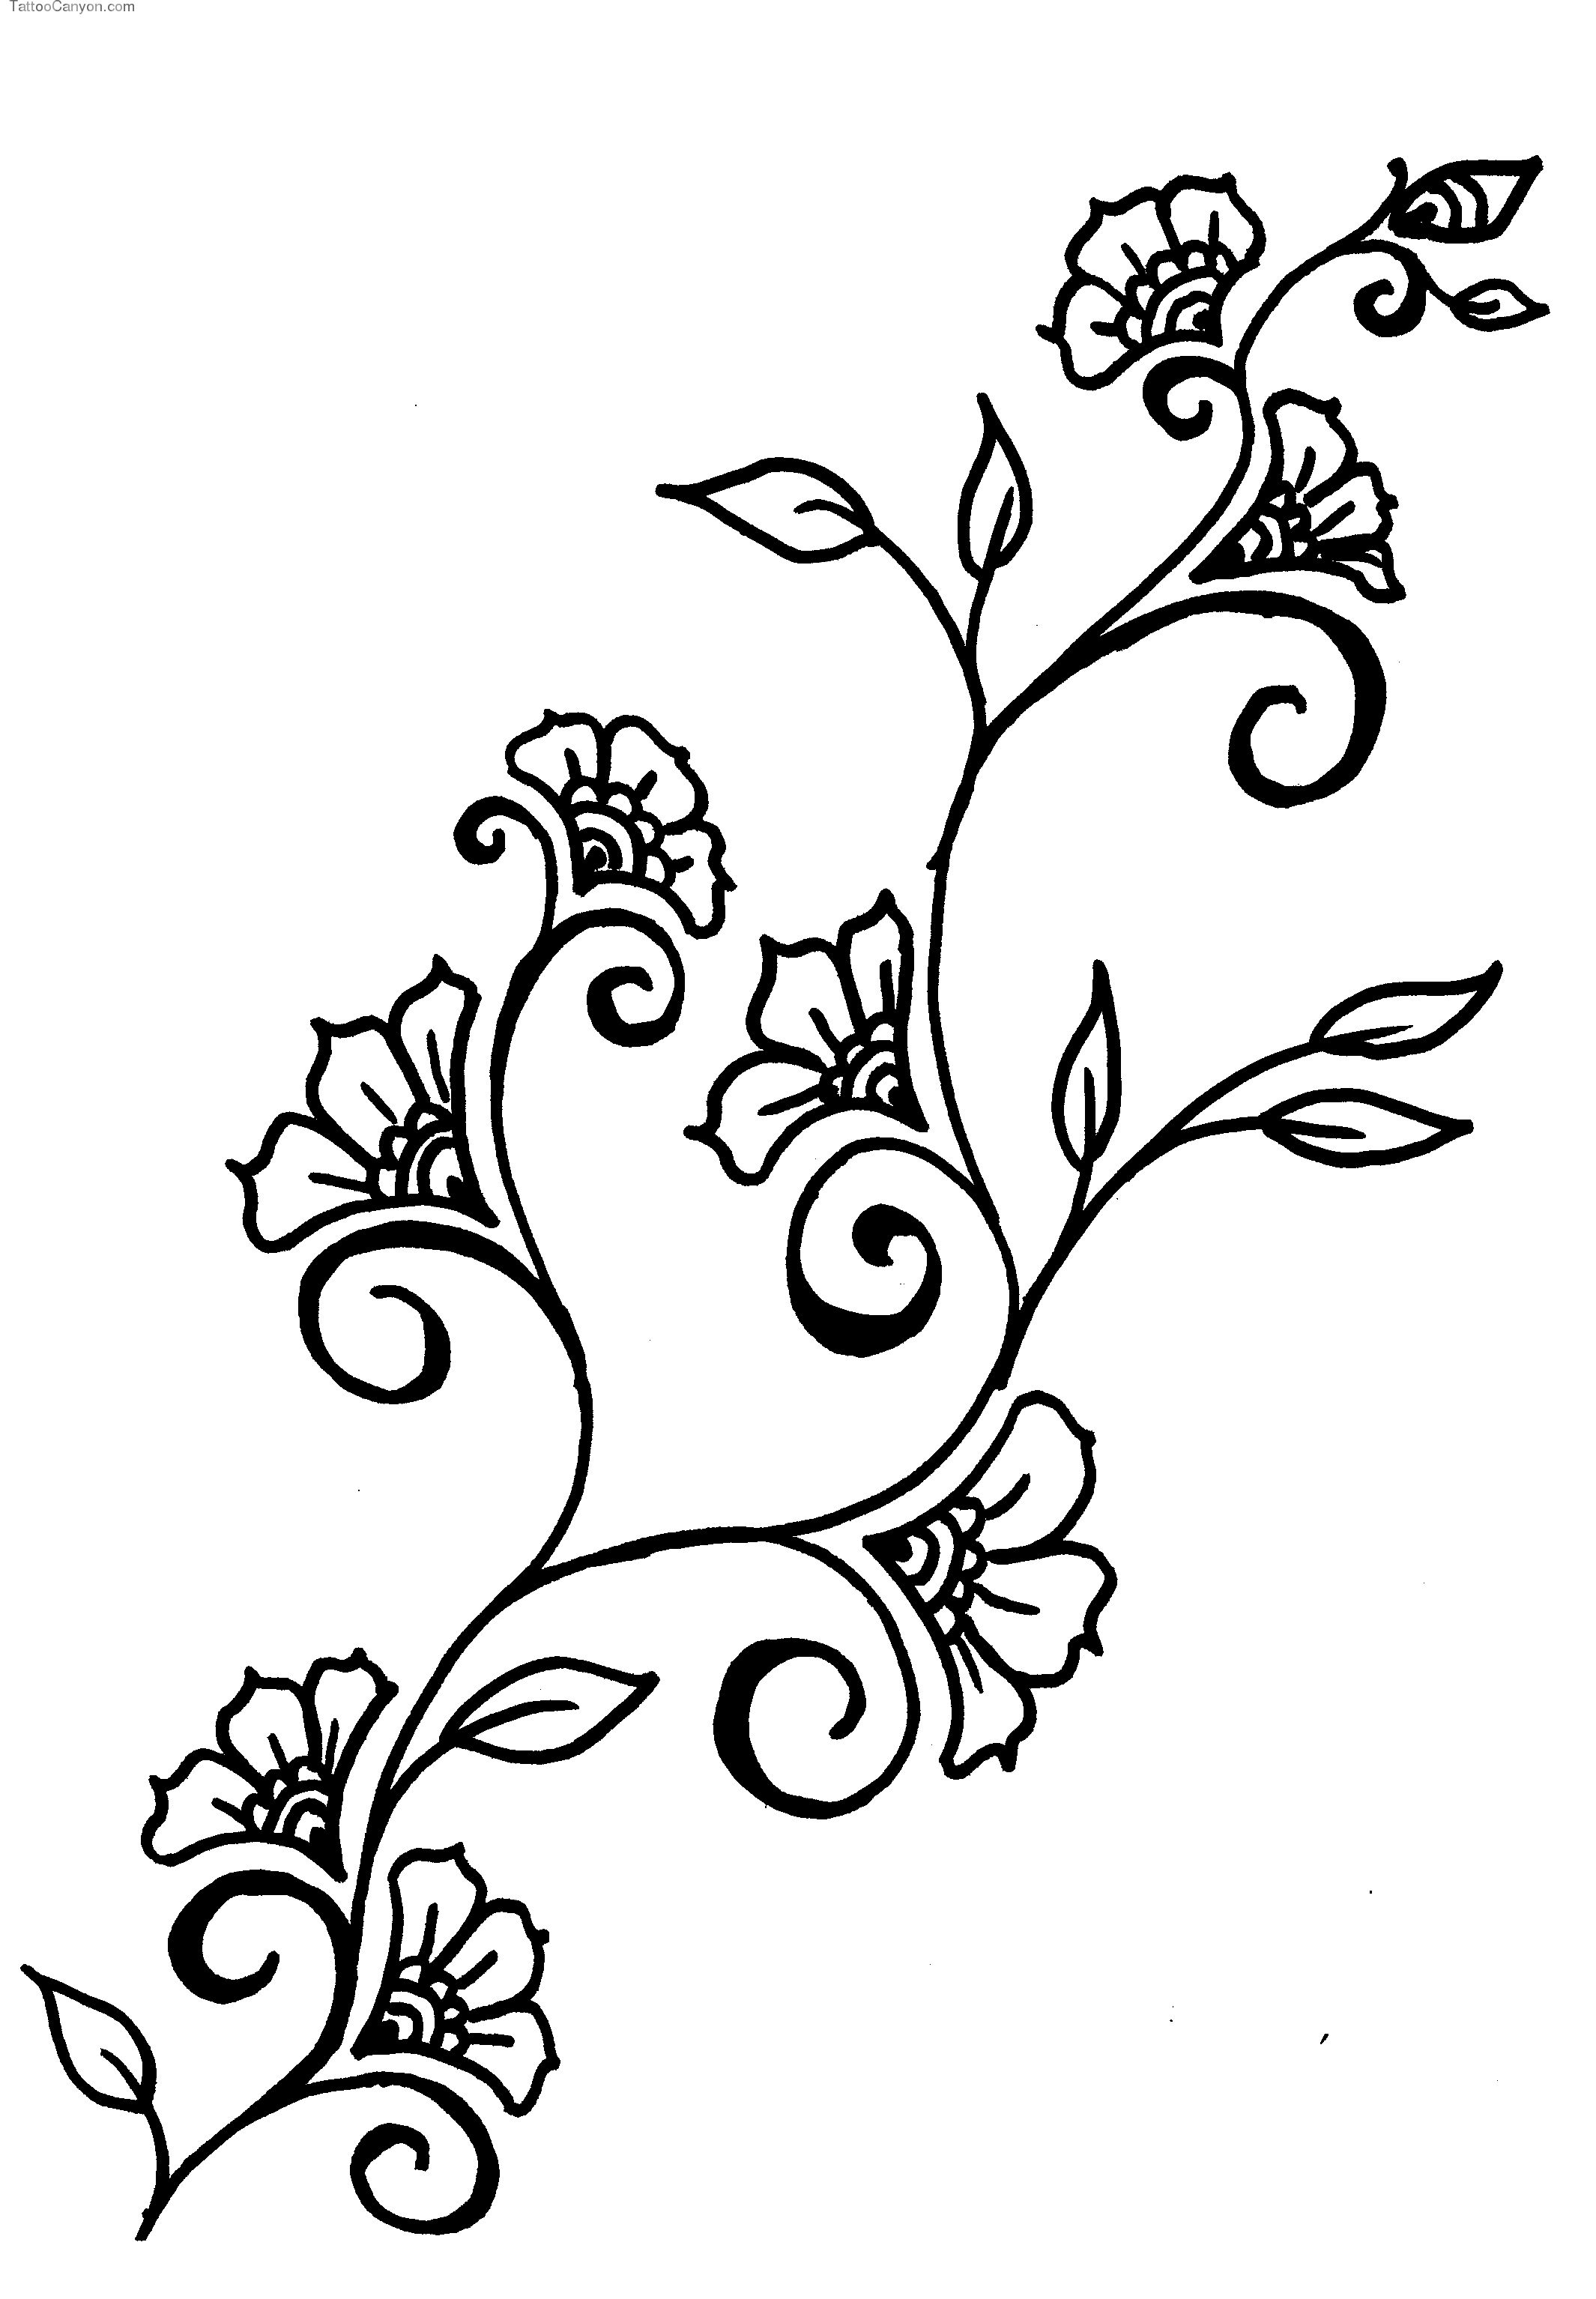 Drawing clipart craft. Vines flowers design drawings